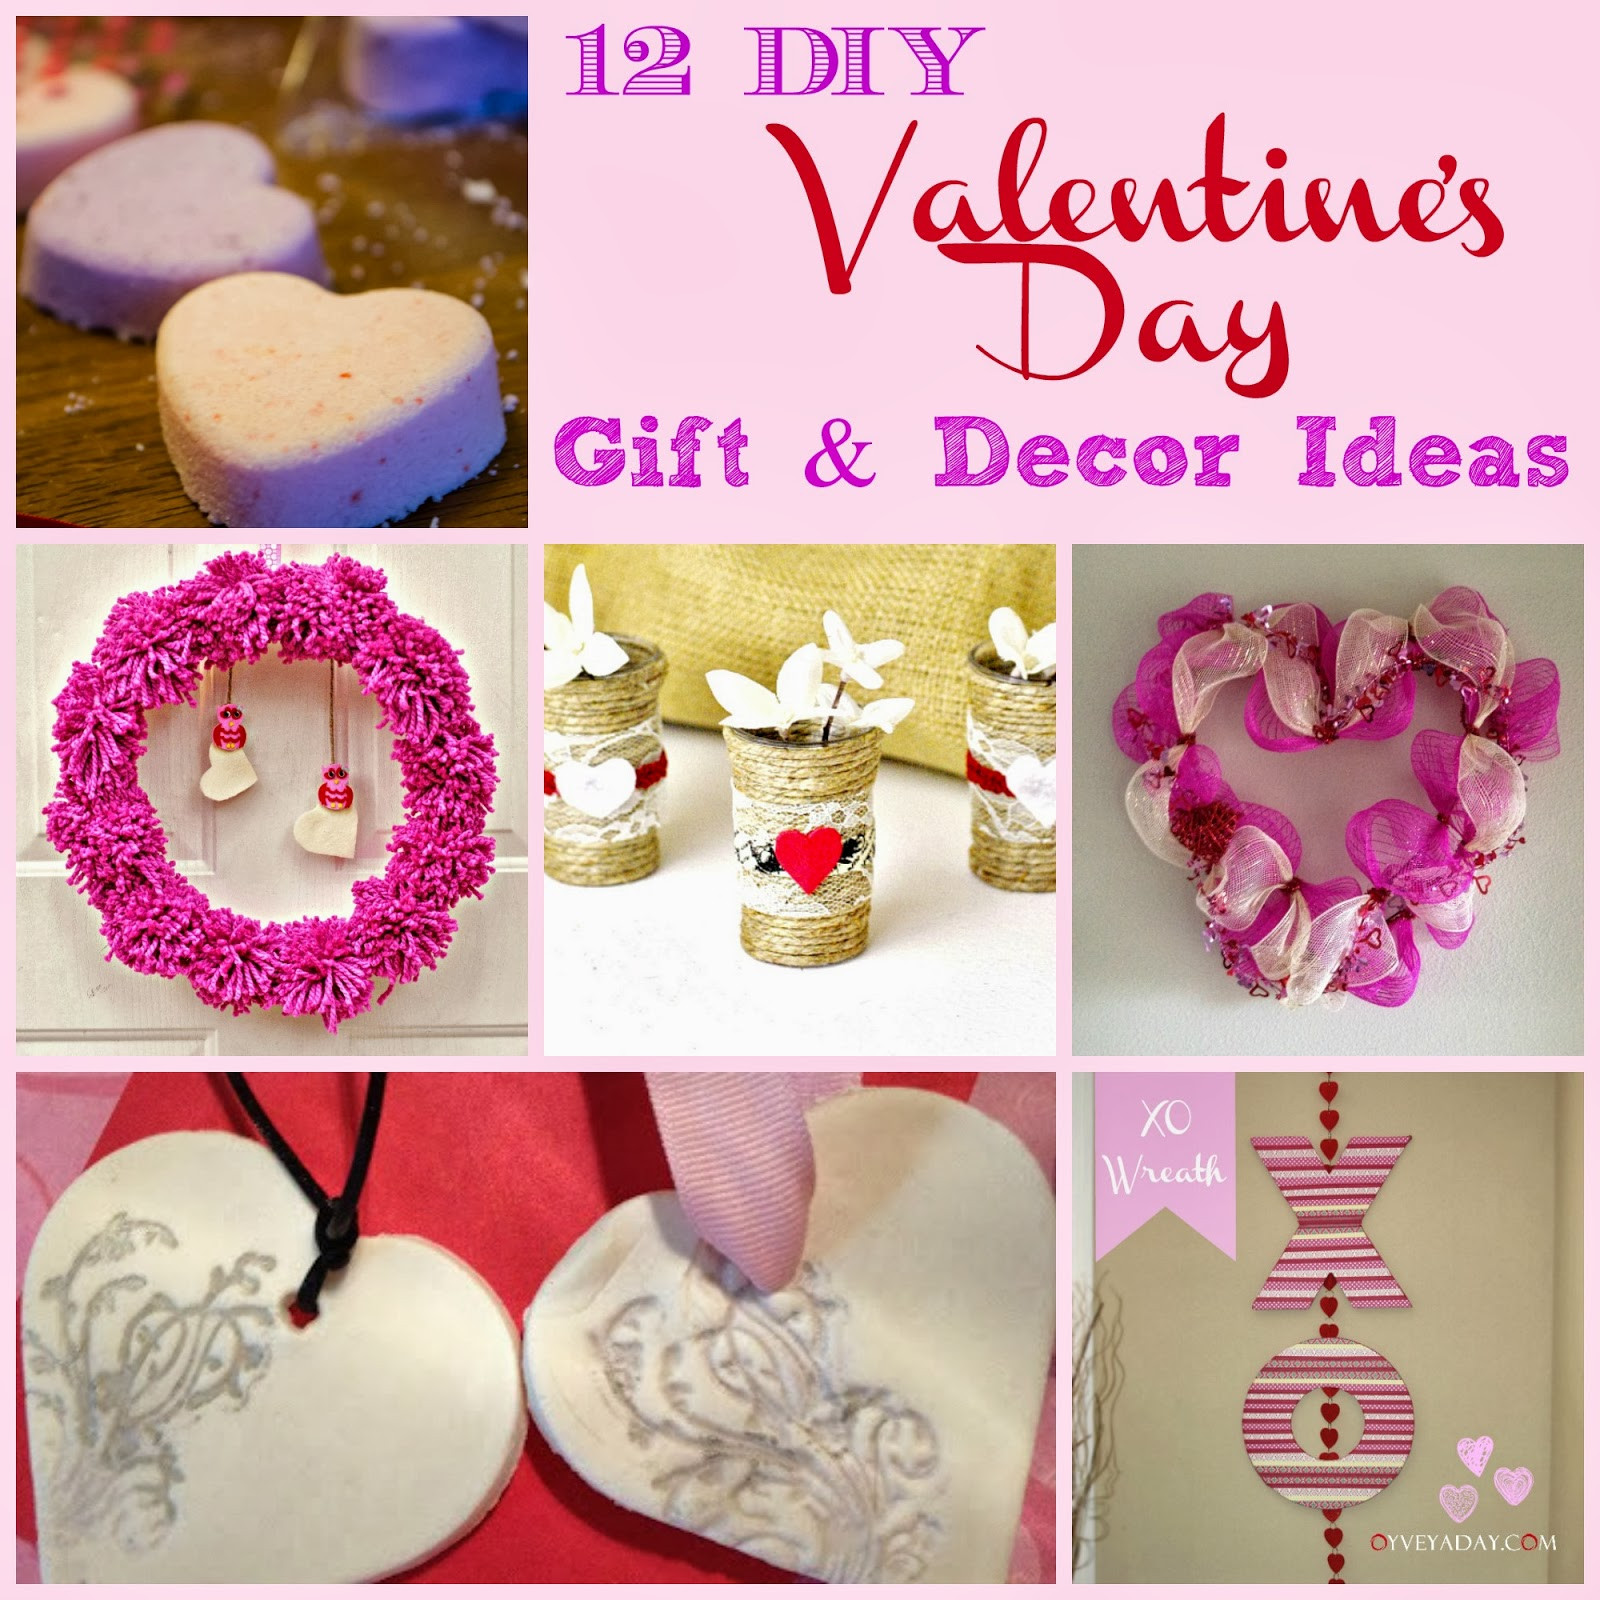 Diy Valentines Gift Ideas  12 DIY Valentine s Day Gift & Decor Ideas Outnumbered 3 to 1